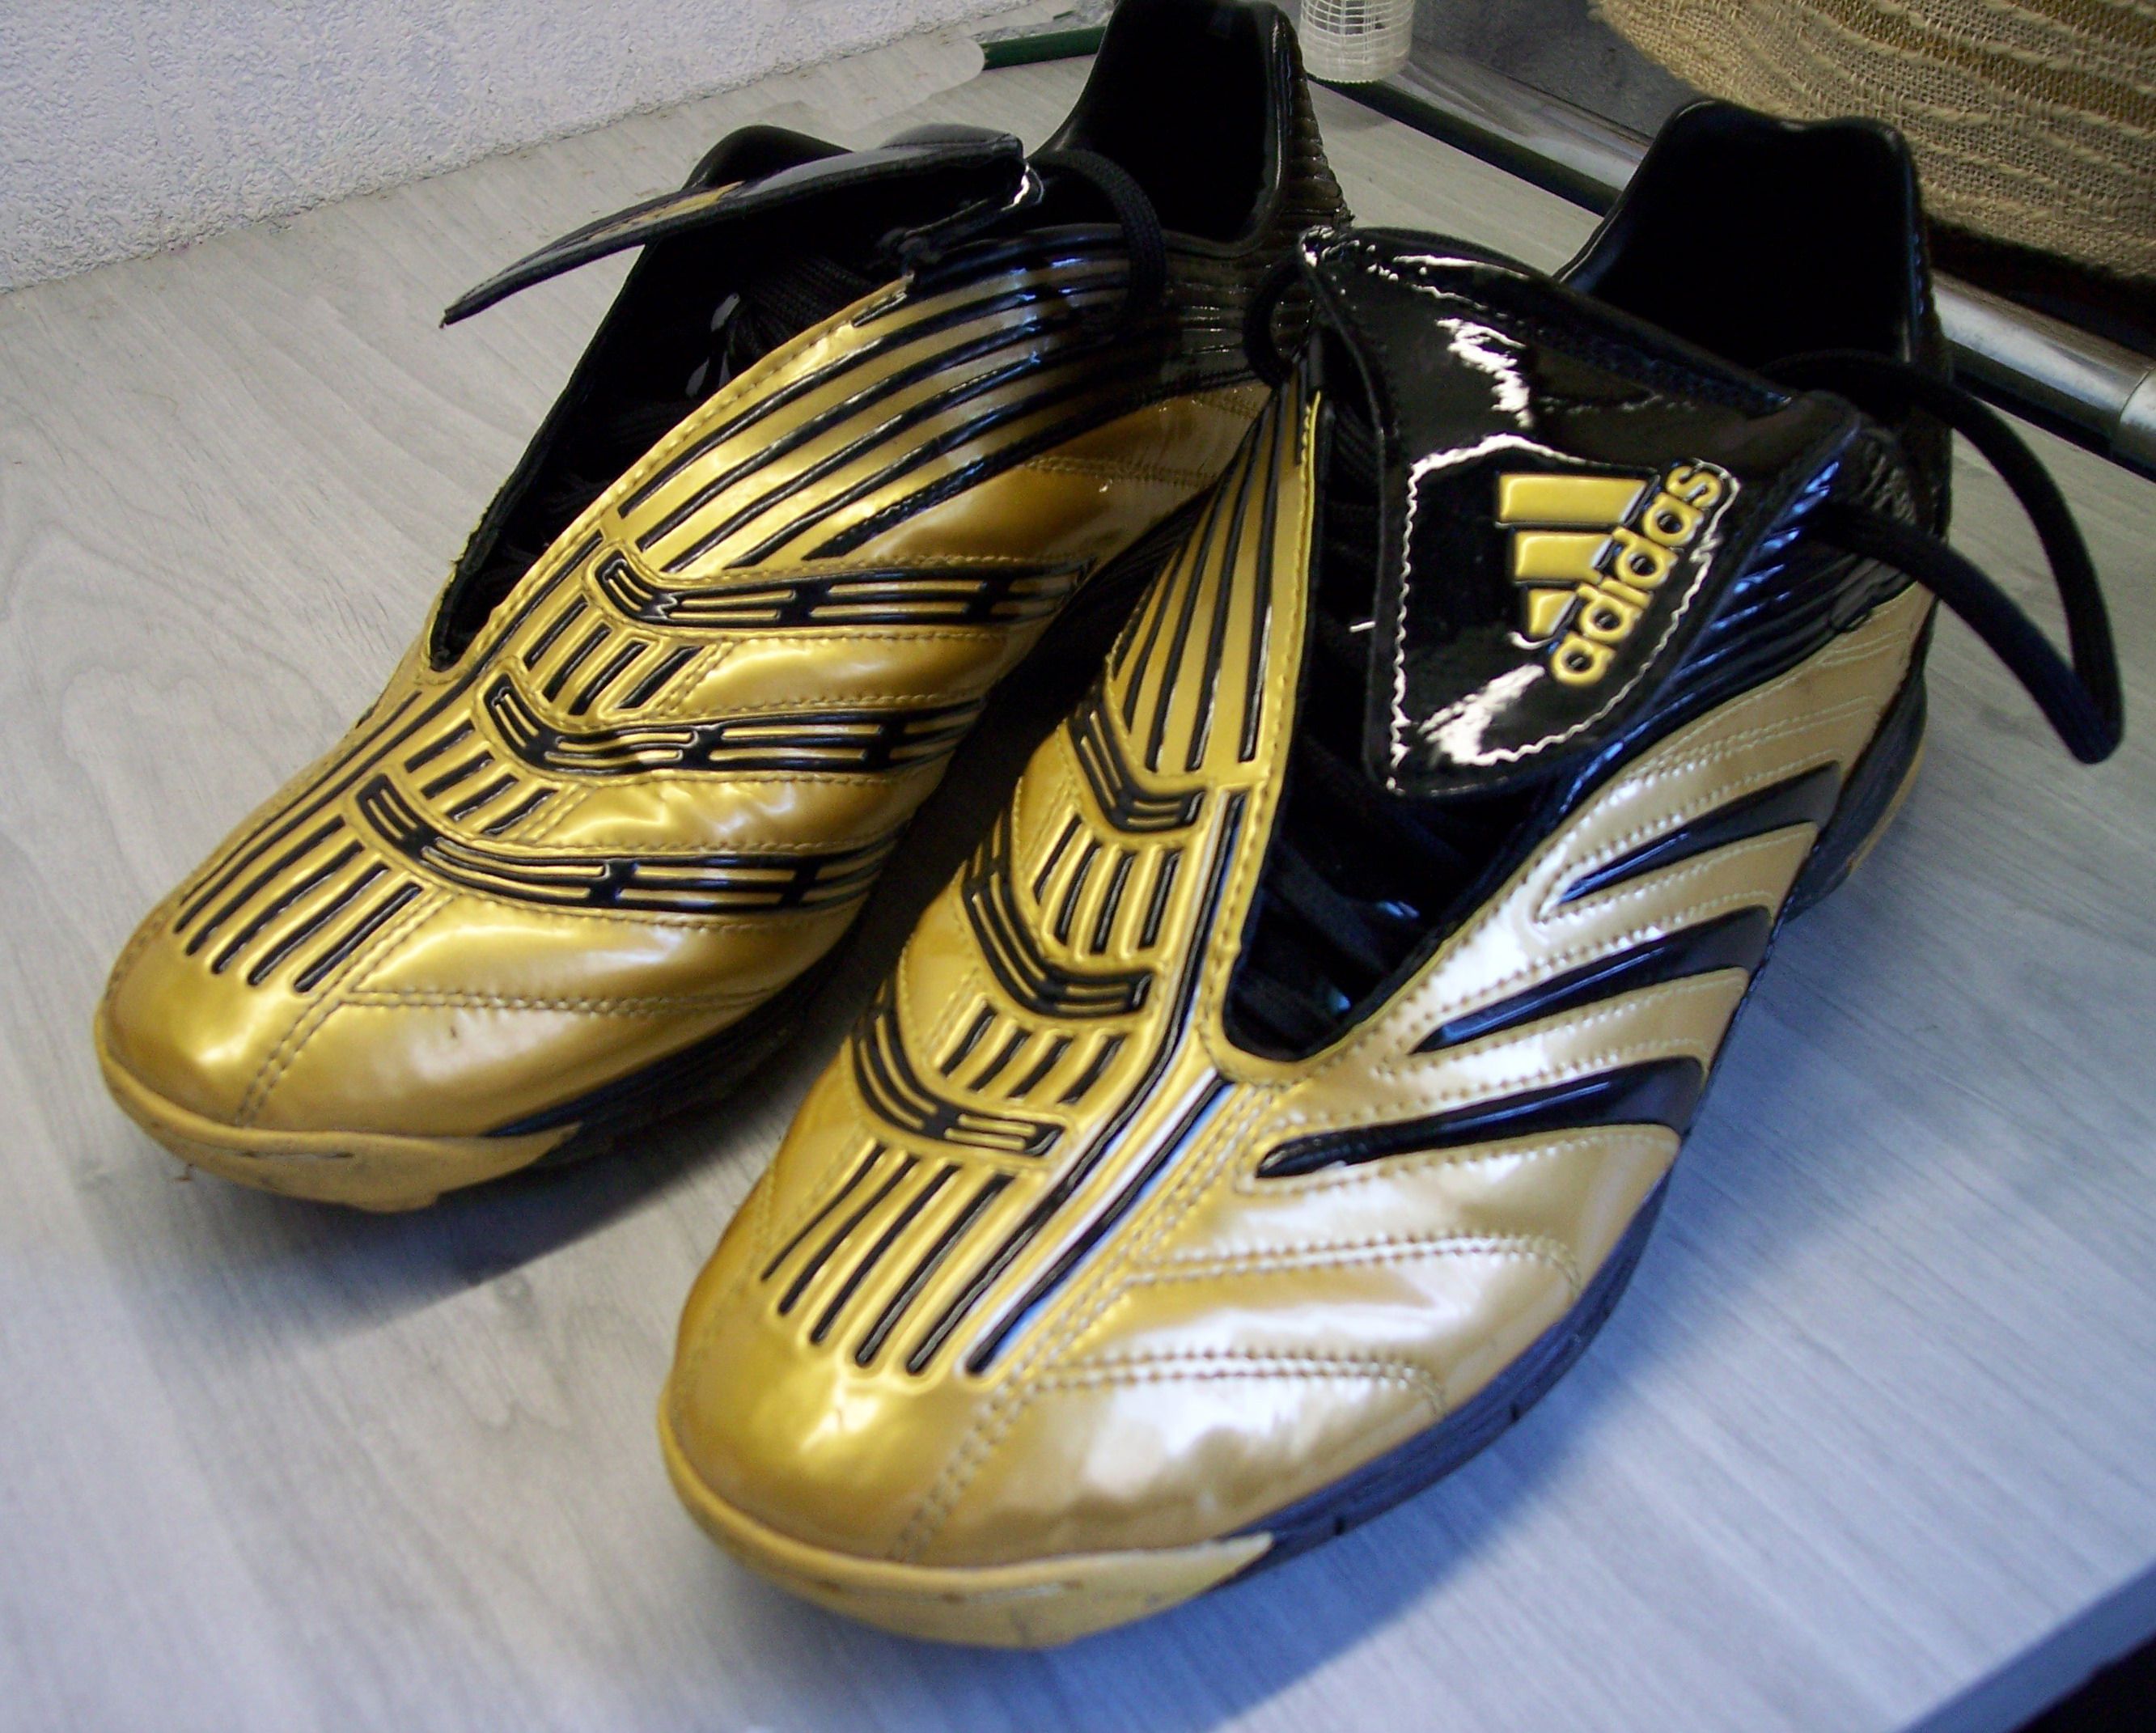 Adidas Soccer Shoes Wikipedia